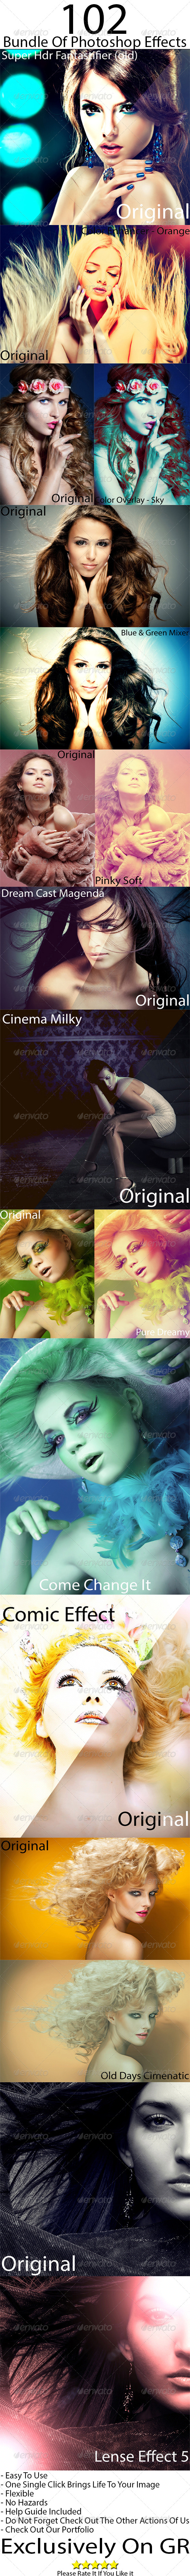 GraphicRiver Photoshop Premium Effects Bundle 5084267